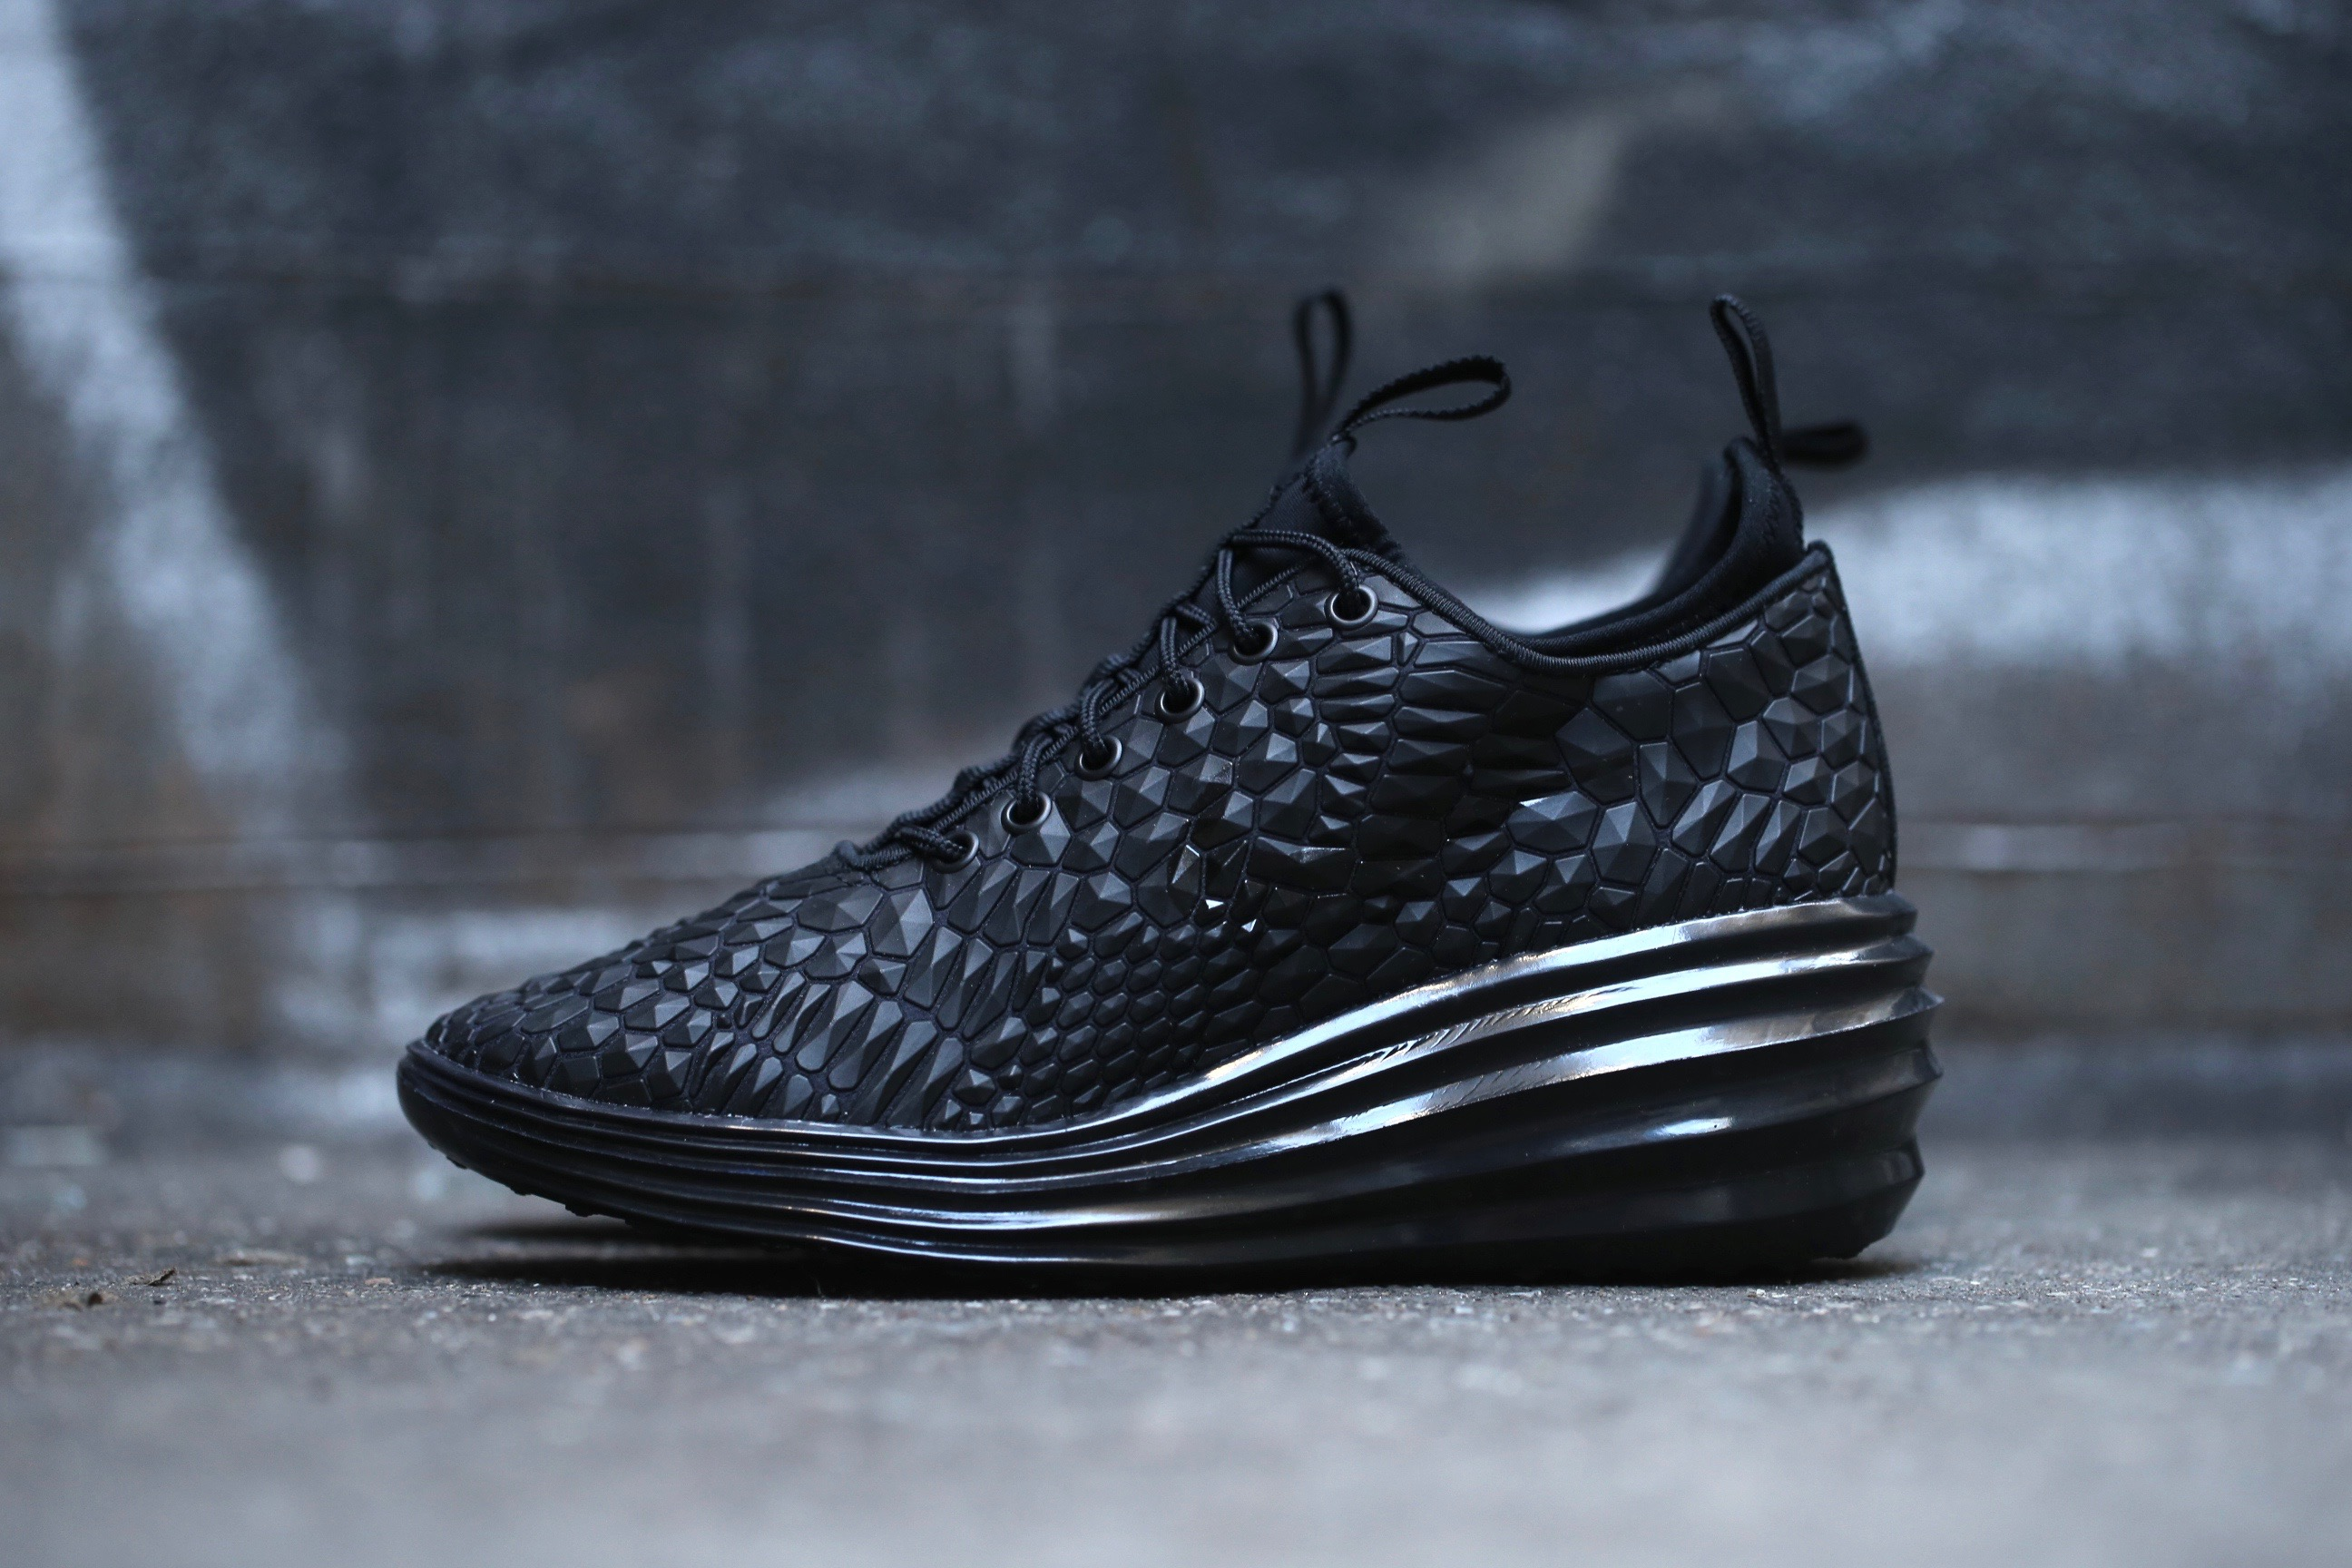 check out eb39b 00637 ... new arrivals nike lunar elite sky hi black .. 2a874 2e312